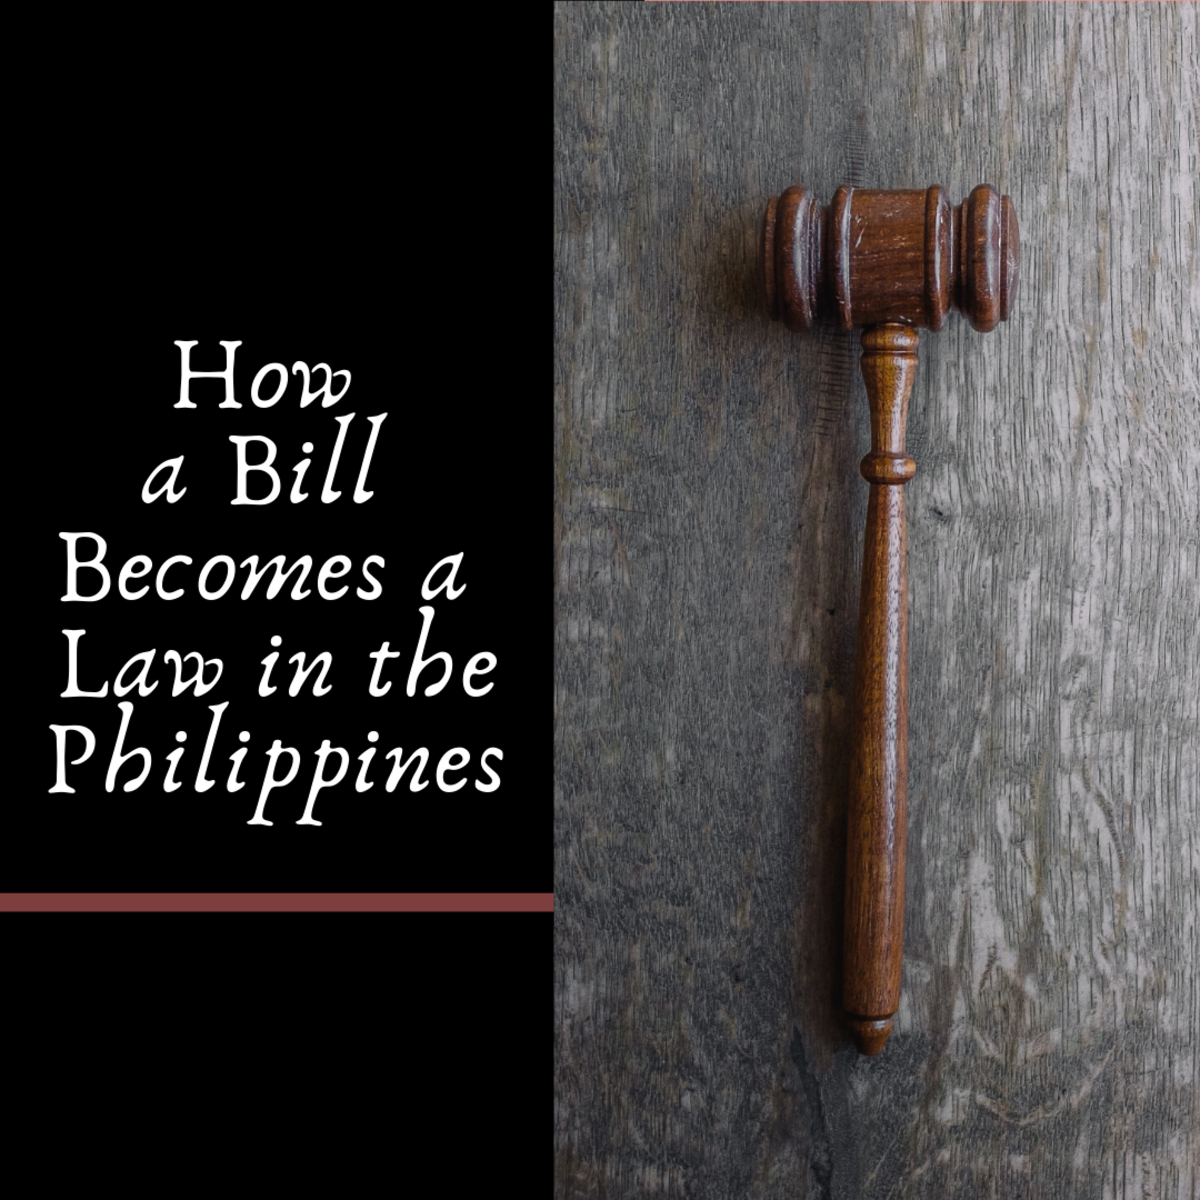 How a Bill Becomes a Law in the Philippines